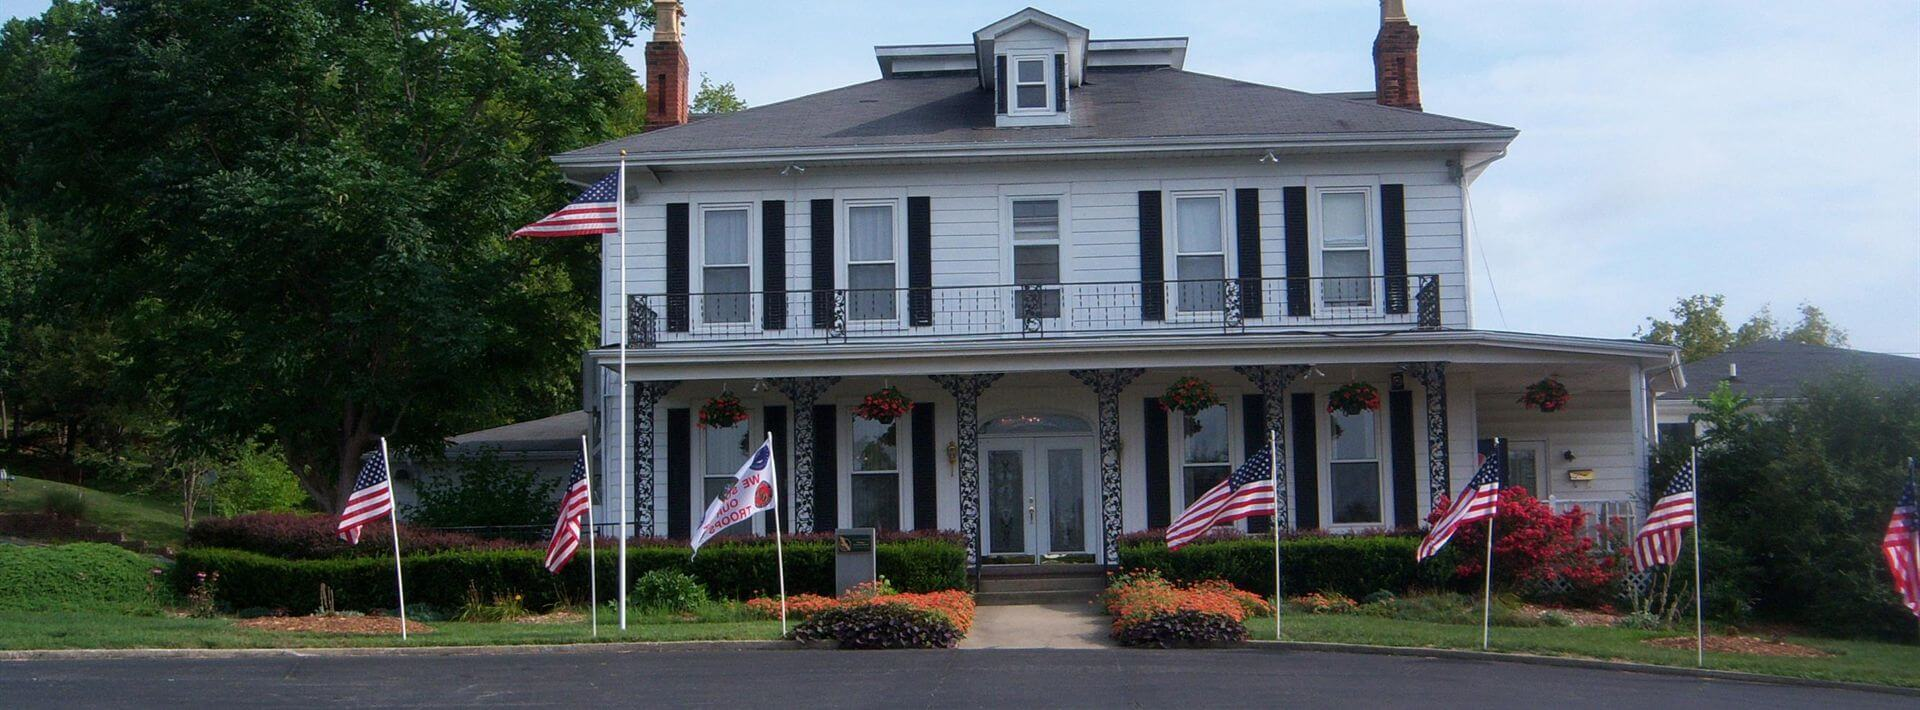 Tributes | Malone Funeral Home | Grayson, KY